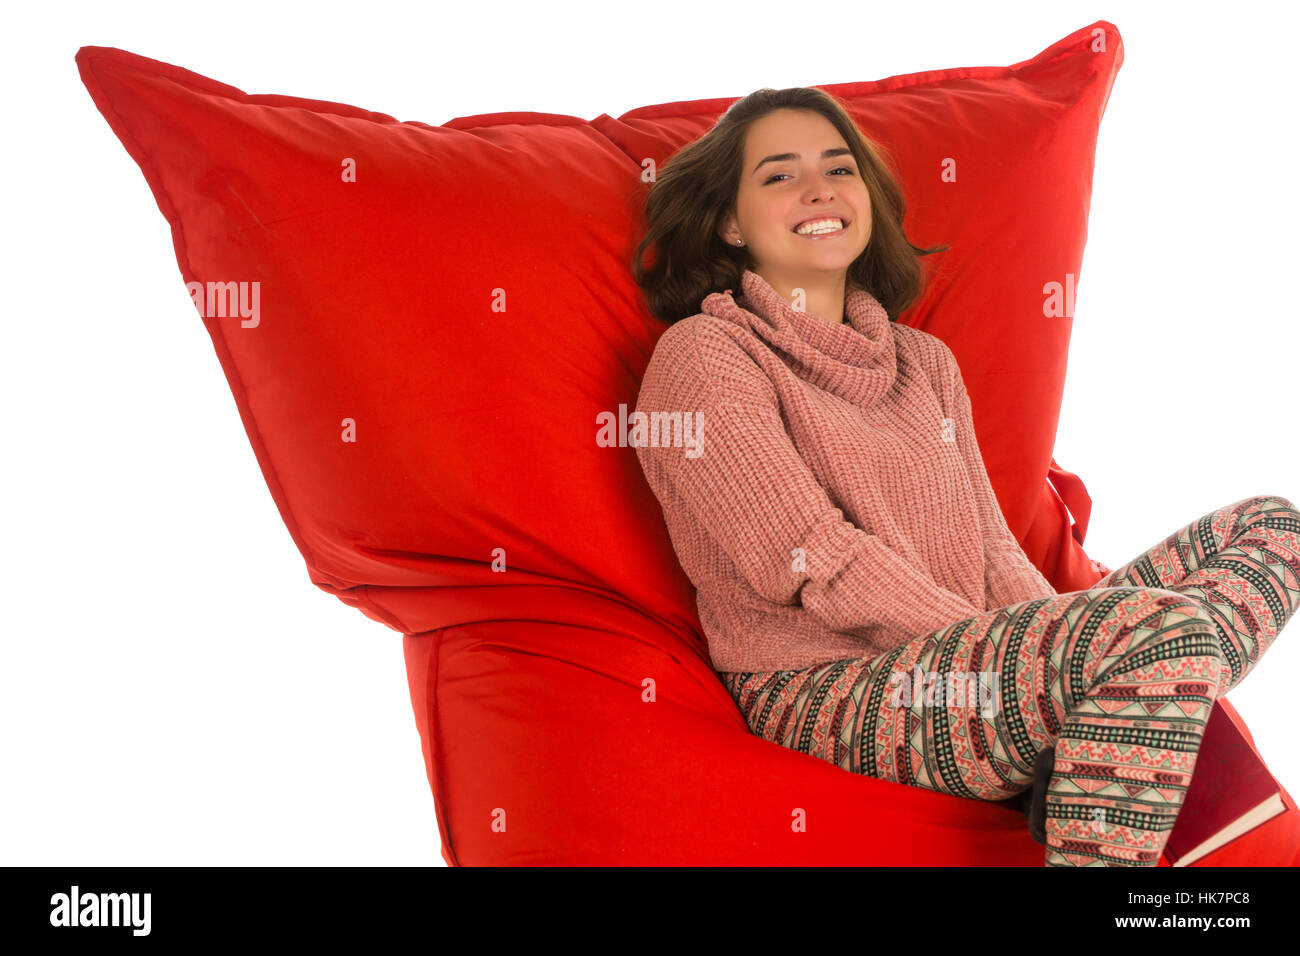 Smiling young woman sitting on red beanbag sofa chair for living room or other room and holding a book isolated - Stock Image